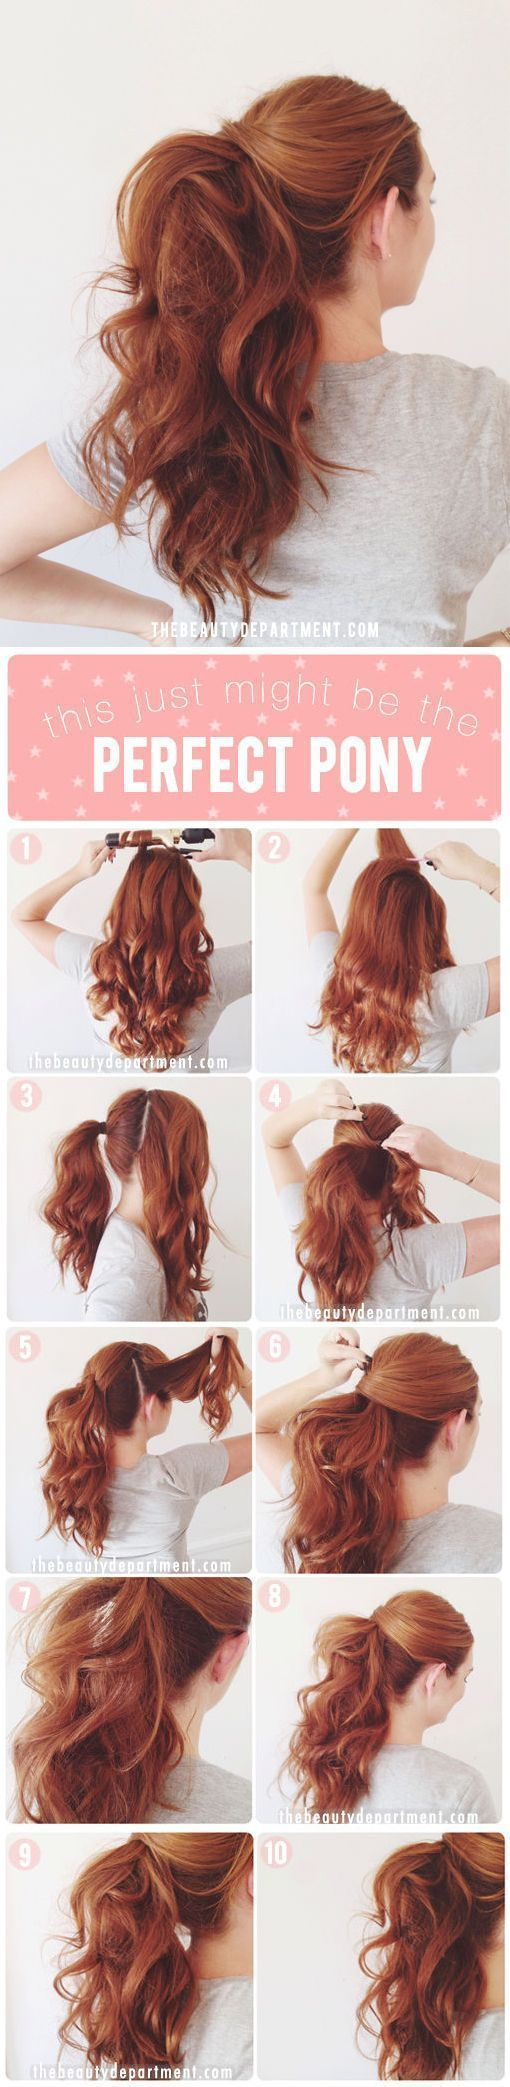 Cute Messy Ponytail Hairstyles